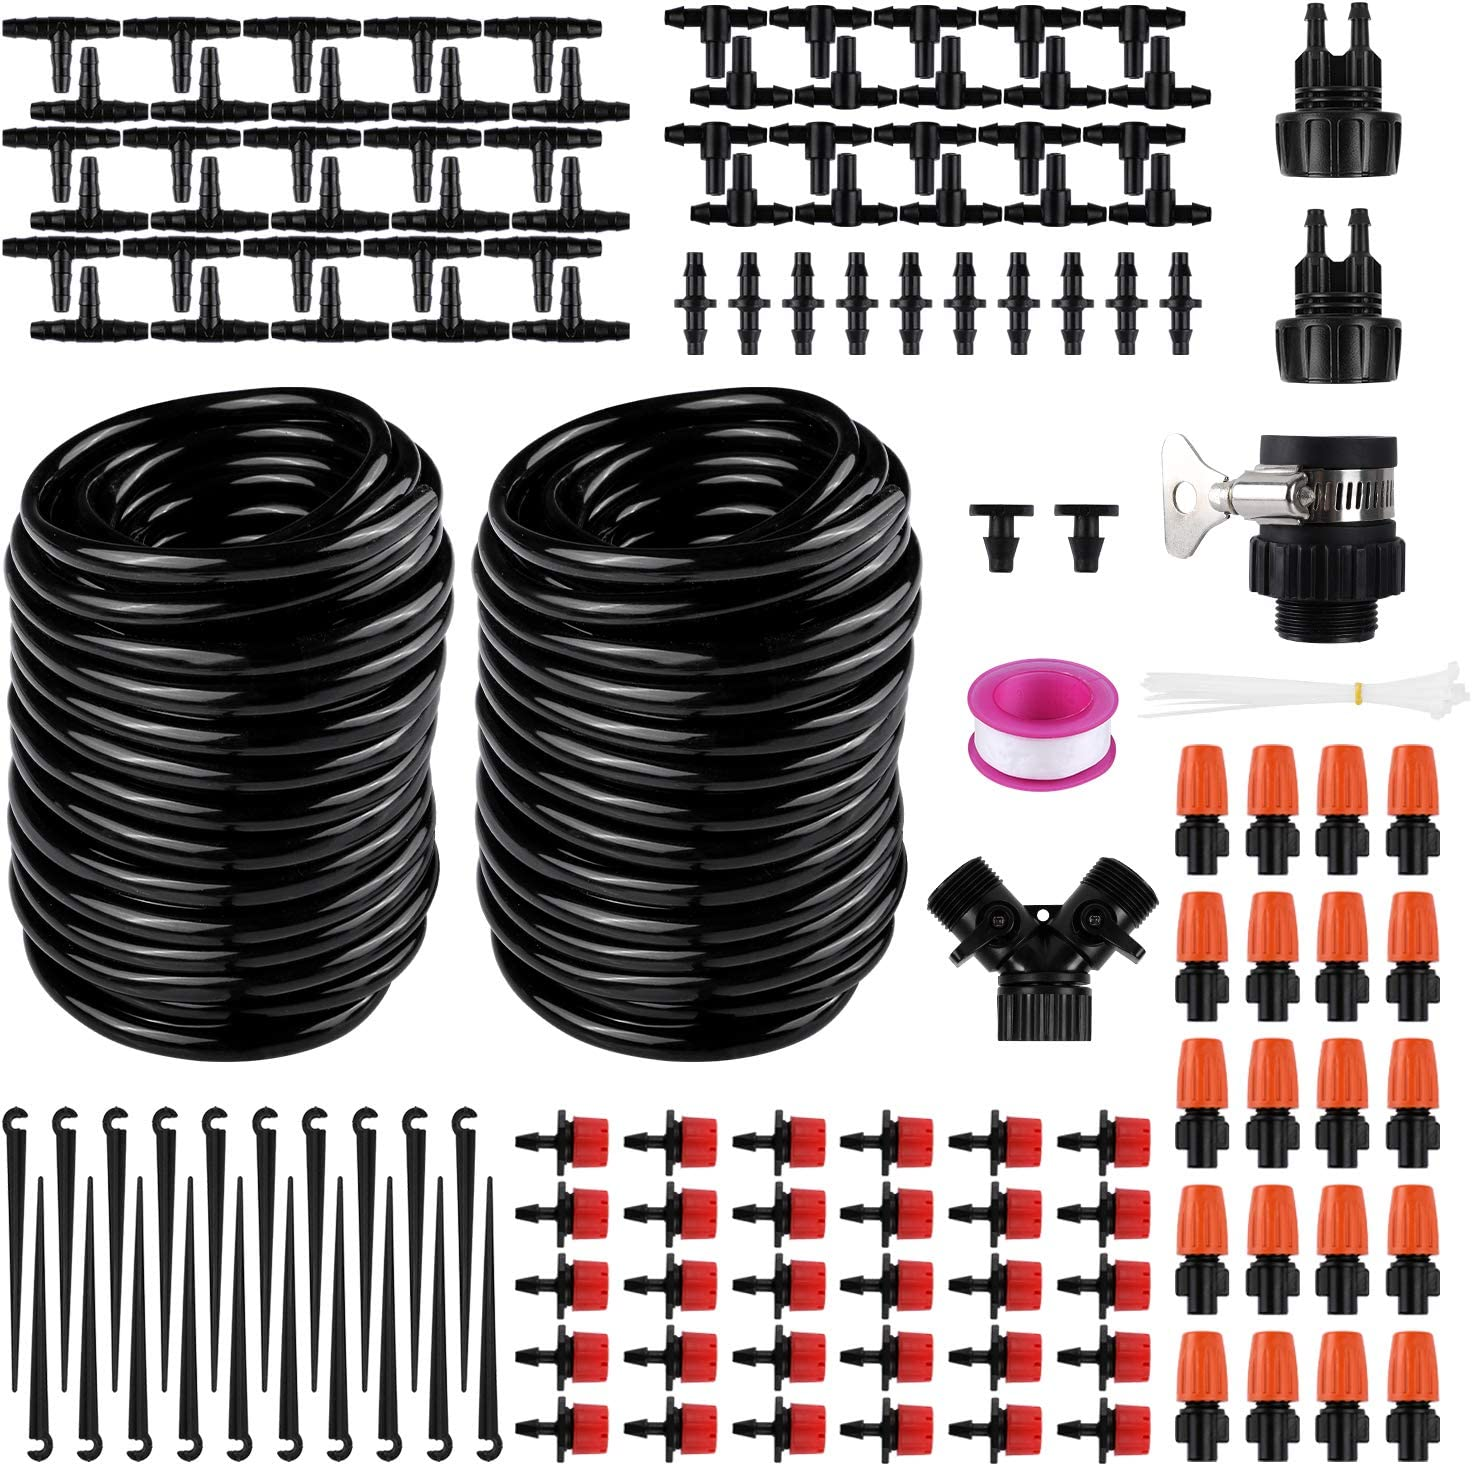 Buluri 98ft/30m Drip Irrigation Kits-DIY Irrigation System with Adjustable Nozzle,Automatic Micro Irrigation Tubing Kits, Water-Saving Sprinkler System for Greenhouse, Raised Flower Bed, Patio